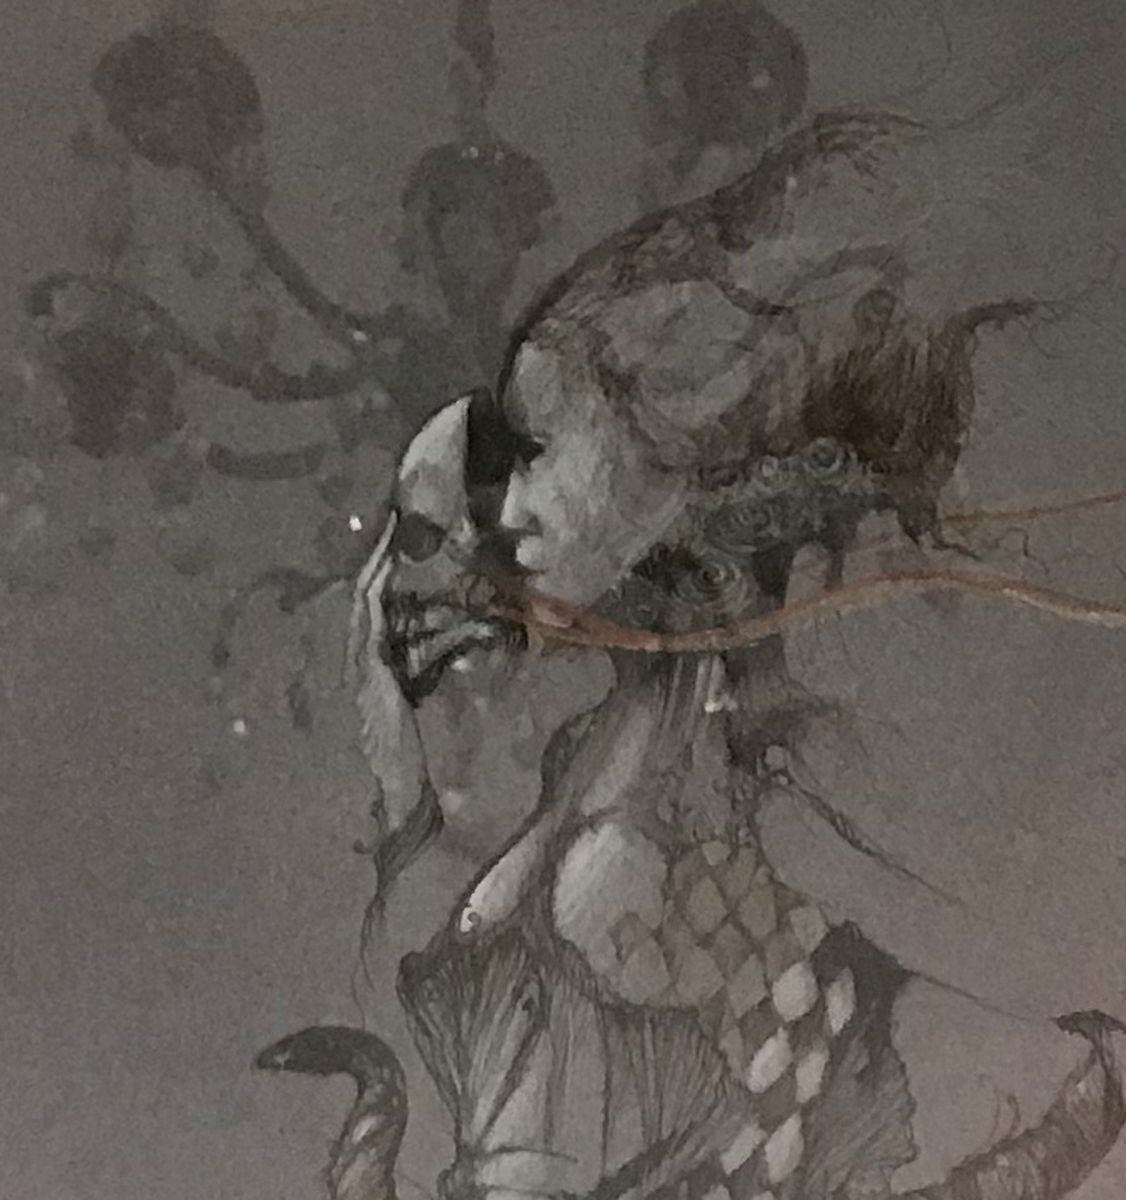 Pin by loyd hutton on 843 anne bachelier humanoid